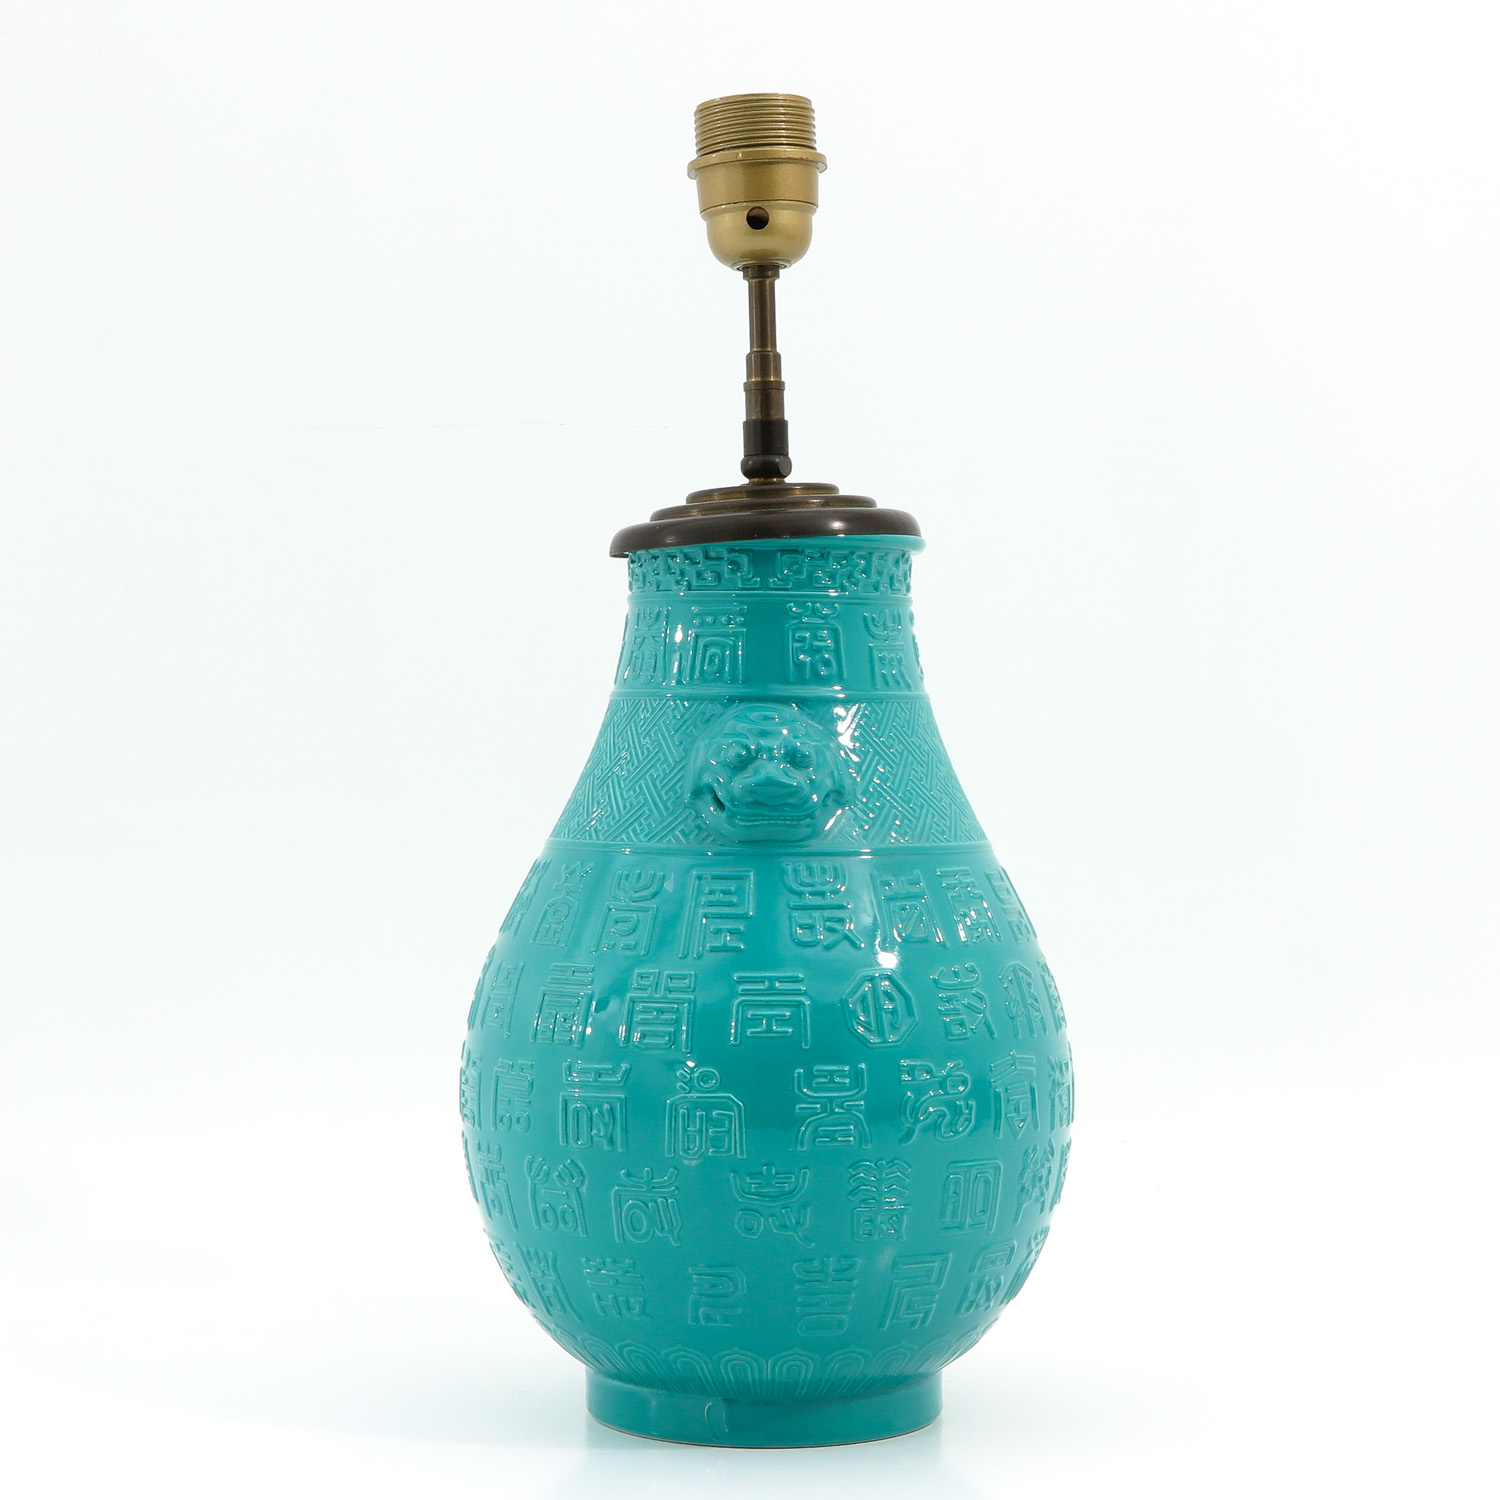 A Turqoise Glaze Lamp - Image 4 of 10